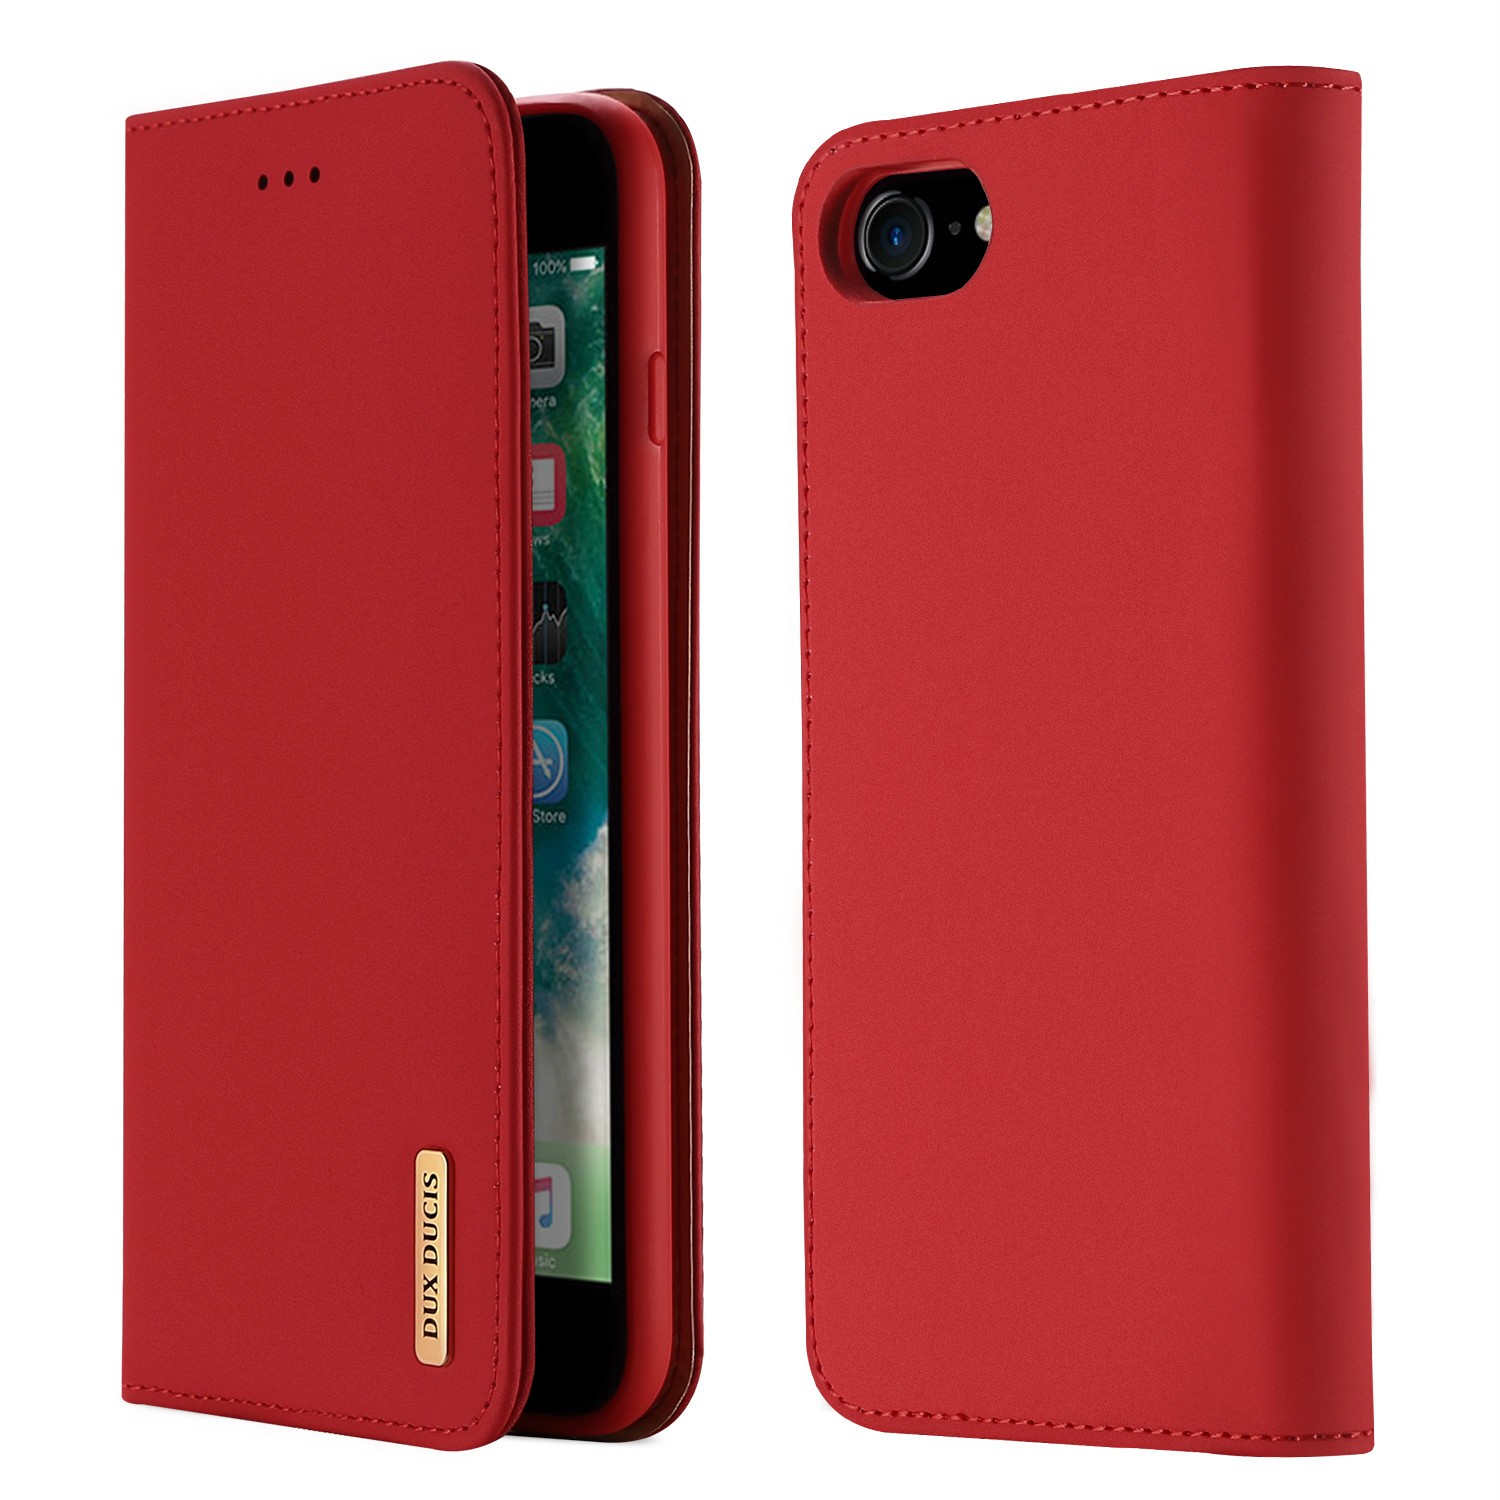 For iPhone 9 Mobile Phone Cover Magnetic Leather Protective Case with Card Slot Bracket red